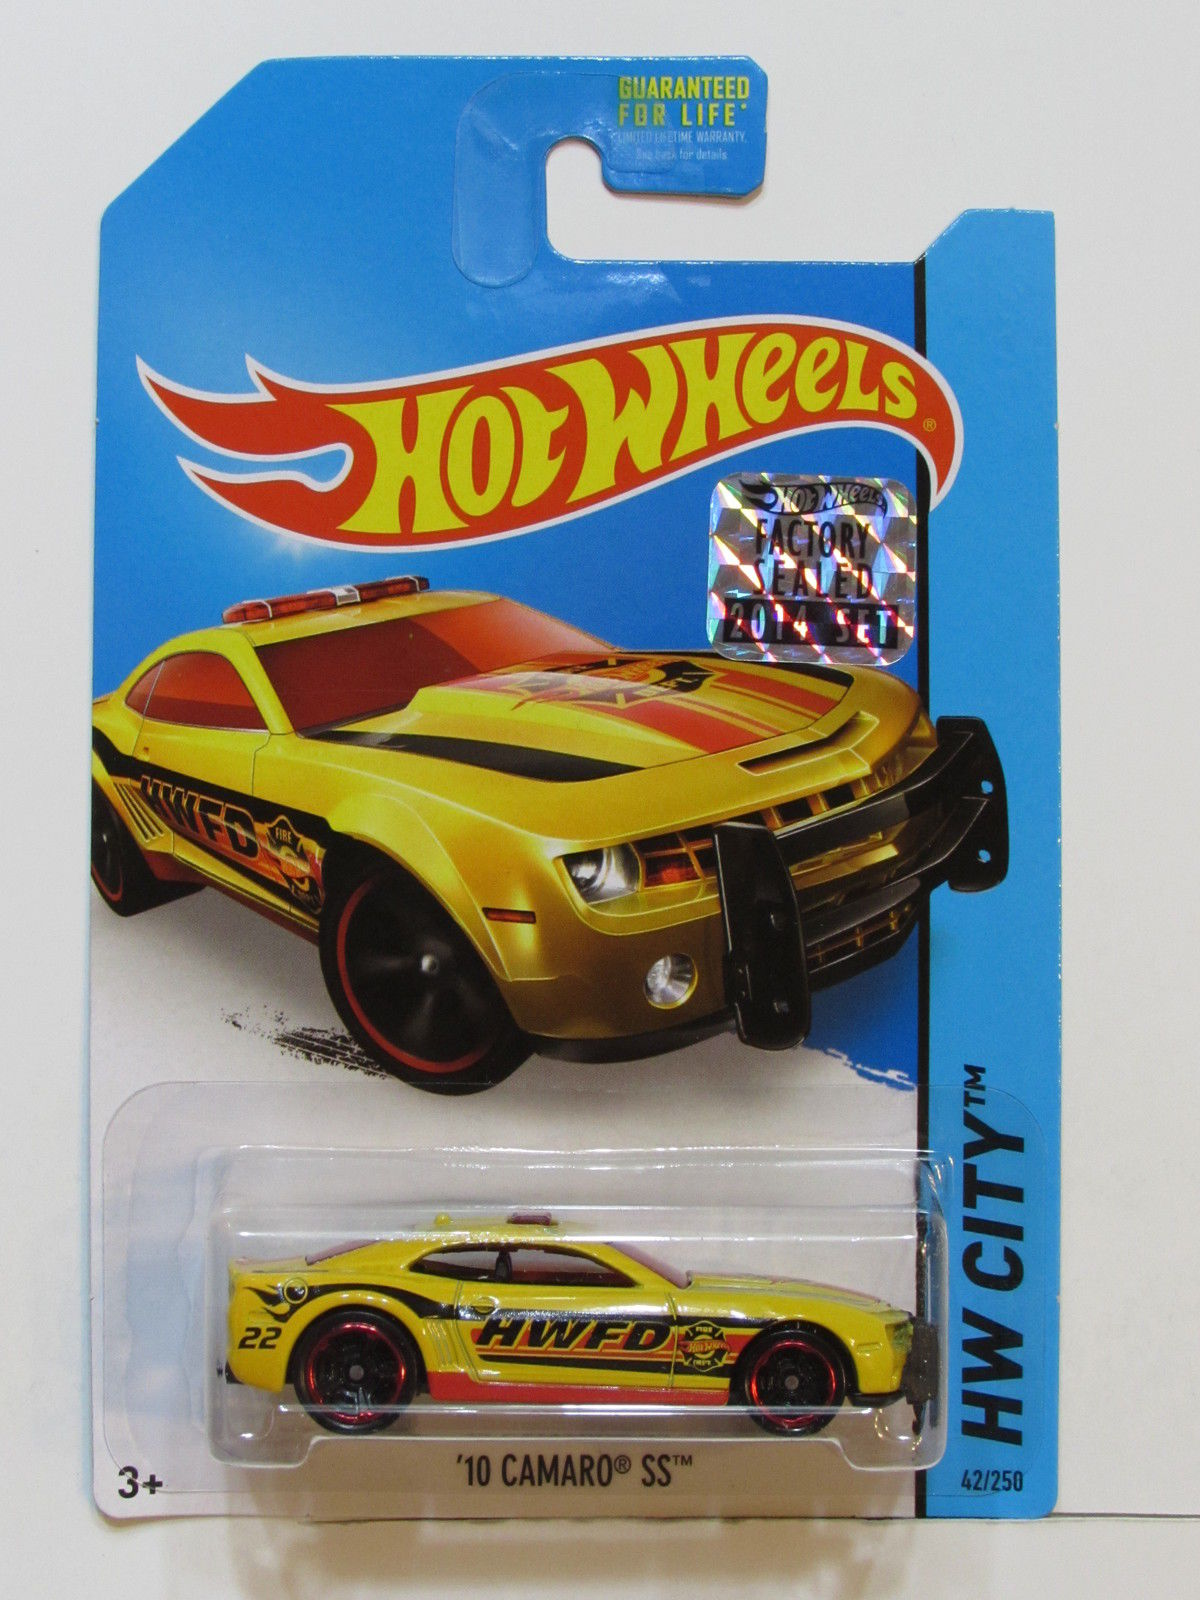 HOT WHEELS 2014 HW CITY 10 CAMARO SS FACTORY SEALED YELLOW